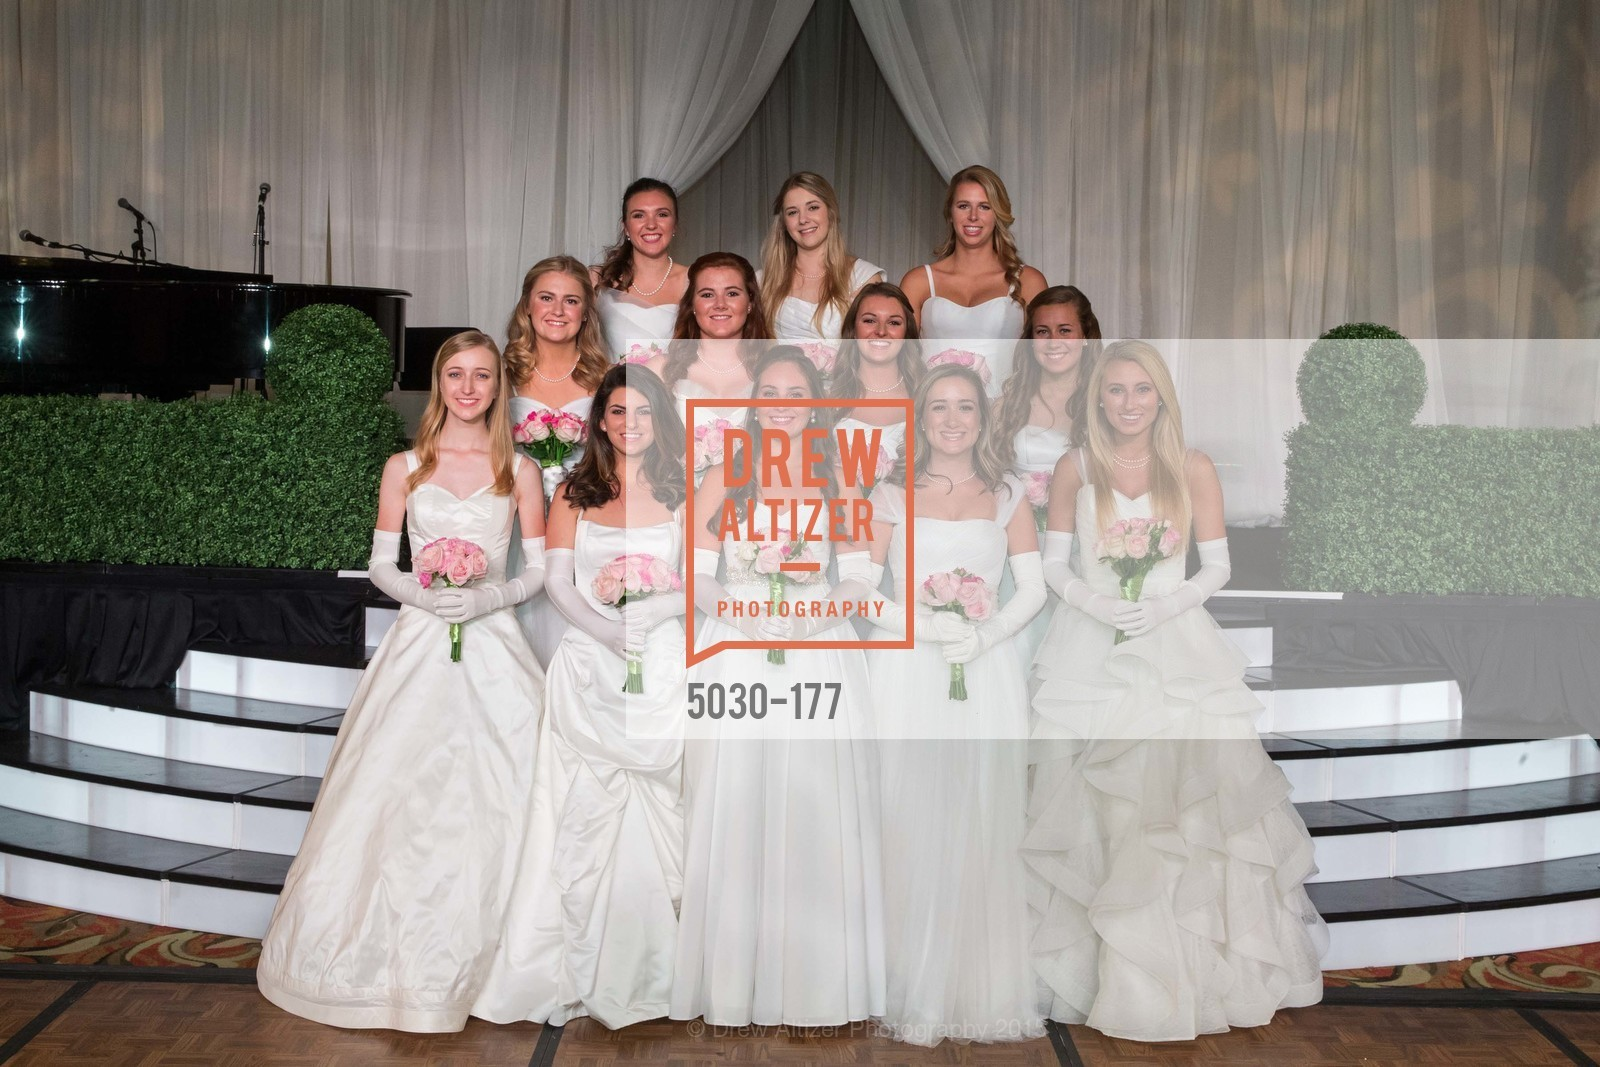 Brooke Raabe, Paige Silverman, Hailey Cusack, Lily Ostler, Mary Grinnell, Sara Scannell, Kendall Finnegan, Rachael Jayne Maier, Sarah Jackmauh, Jennifer Baylis, Julia Chenette, Lindsey Marie Weber, The 2015 San Francisco Debutante Ball, The Westin St. Francis San Francisco Union Square. 335 Powell St, June 20th, 2015,Drew Altizer, Drew Altizer Photography, full-service agency, private events, San Francisco photographer, photographer california